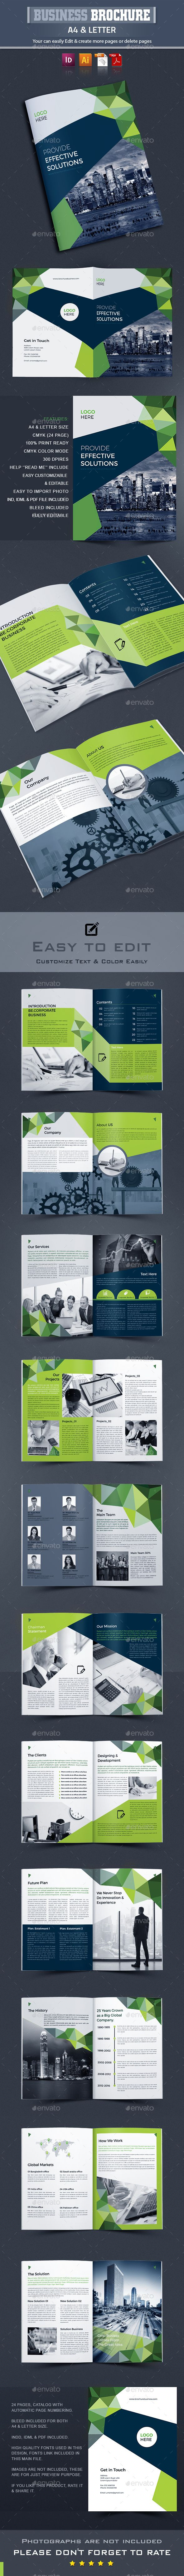 6014 best 9000 brochure template psd designs images on pinterest buy brochure template by akjoy on graphicriver feature easy customizable and editable cmyk color 24 pages design in 300 dpi resolution print ready for pronofoot35fo Images